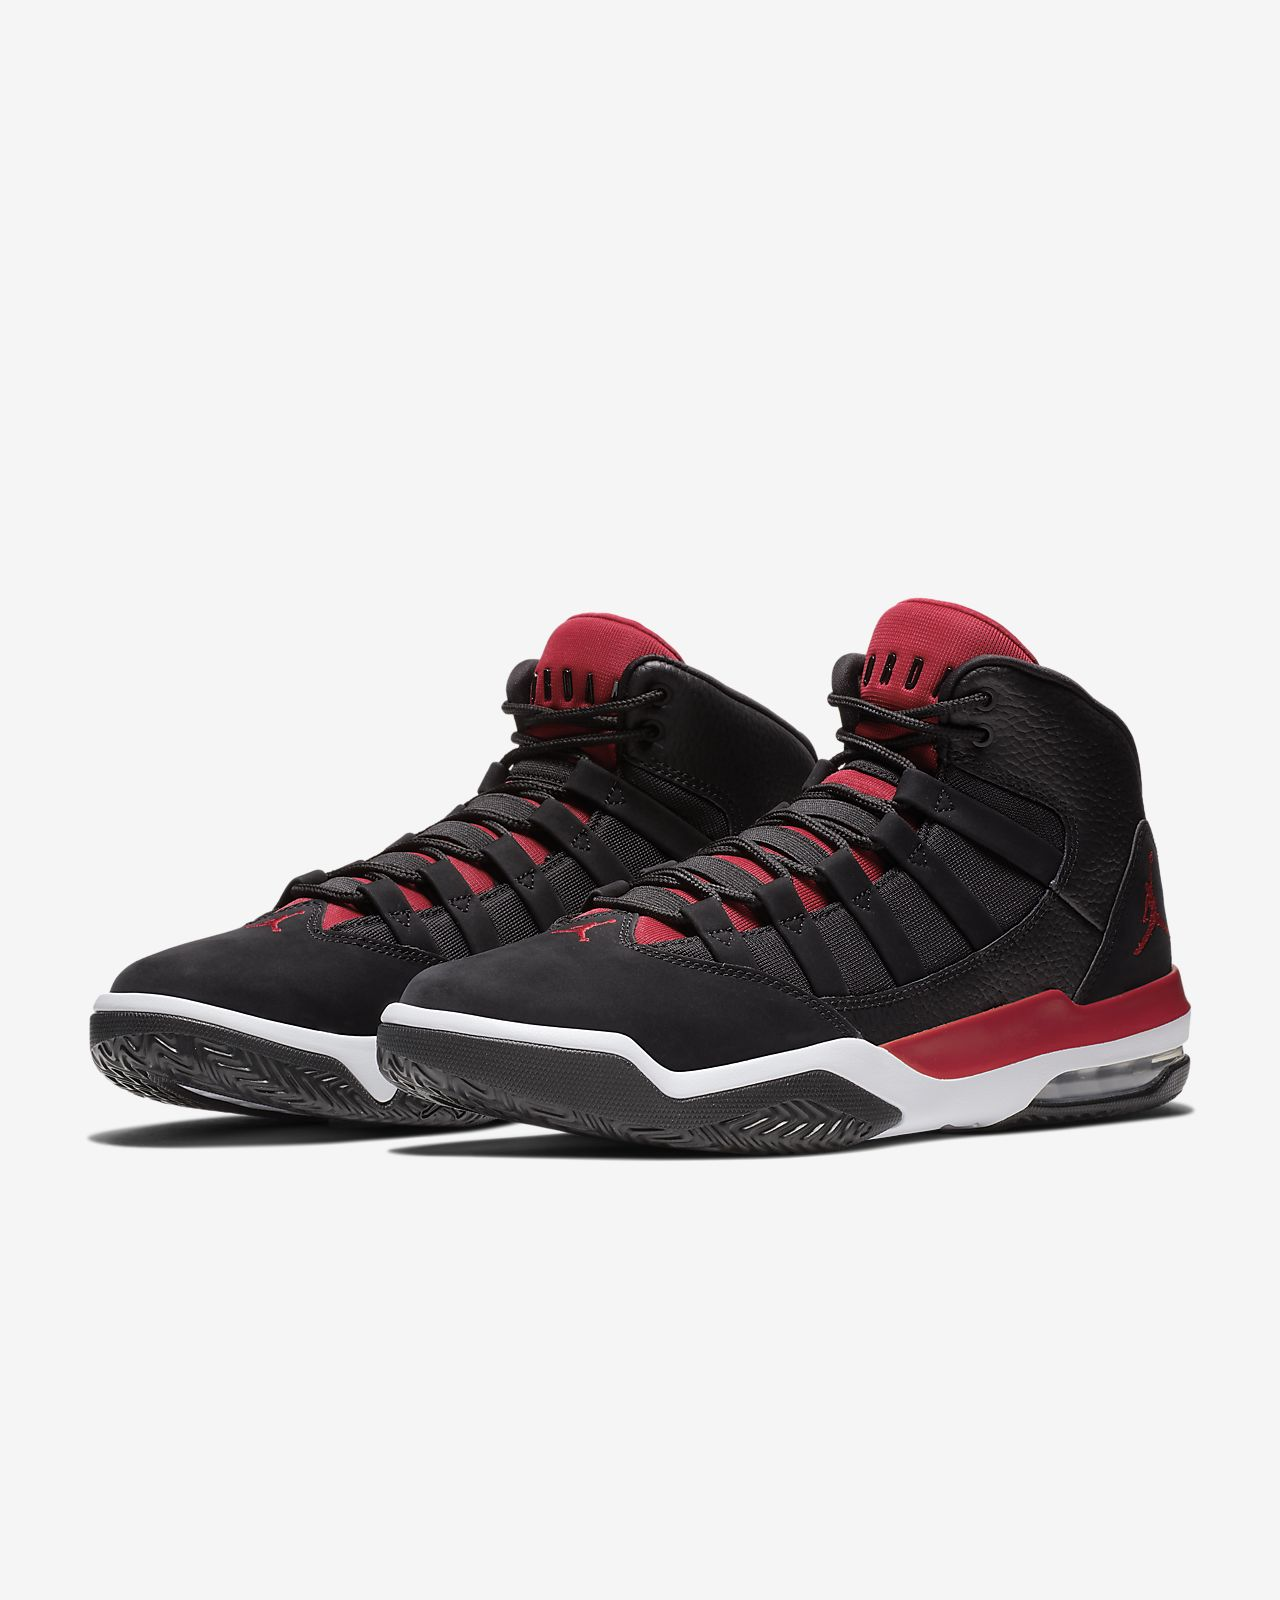 half off 7a571 6eb68 ... Jordan Max Aura Men s Basketball Shoe